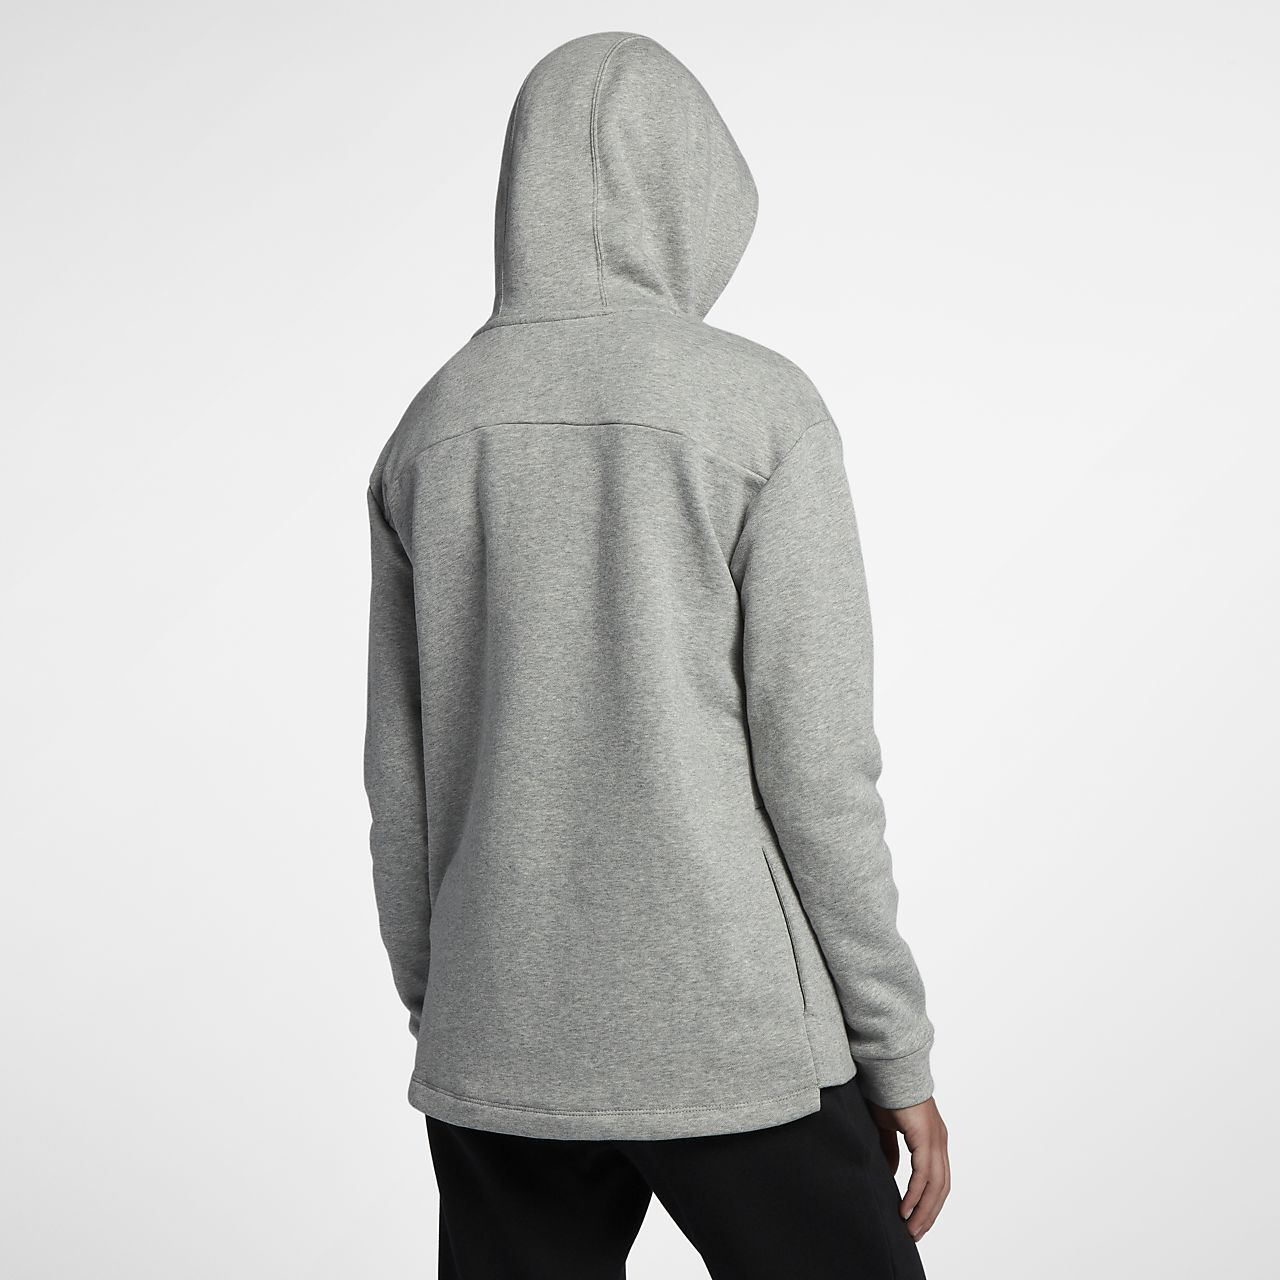 20fcc6ff8b1d Hurley One And Only Fleece Pullover - hættetrøje til kvinder. Nike ...